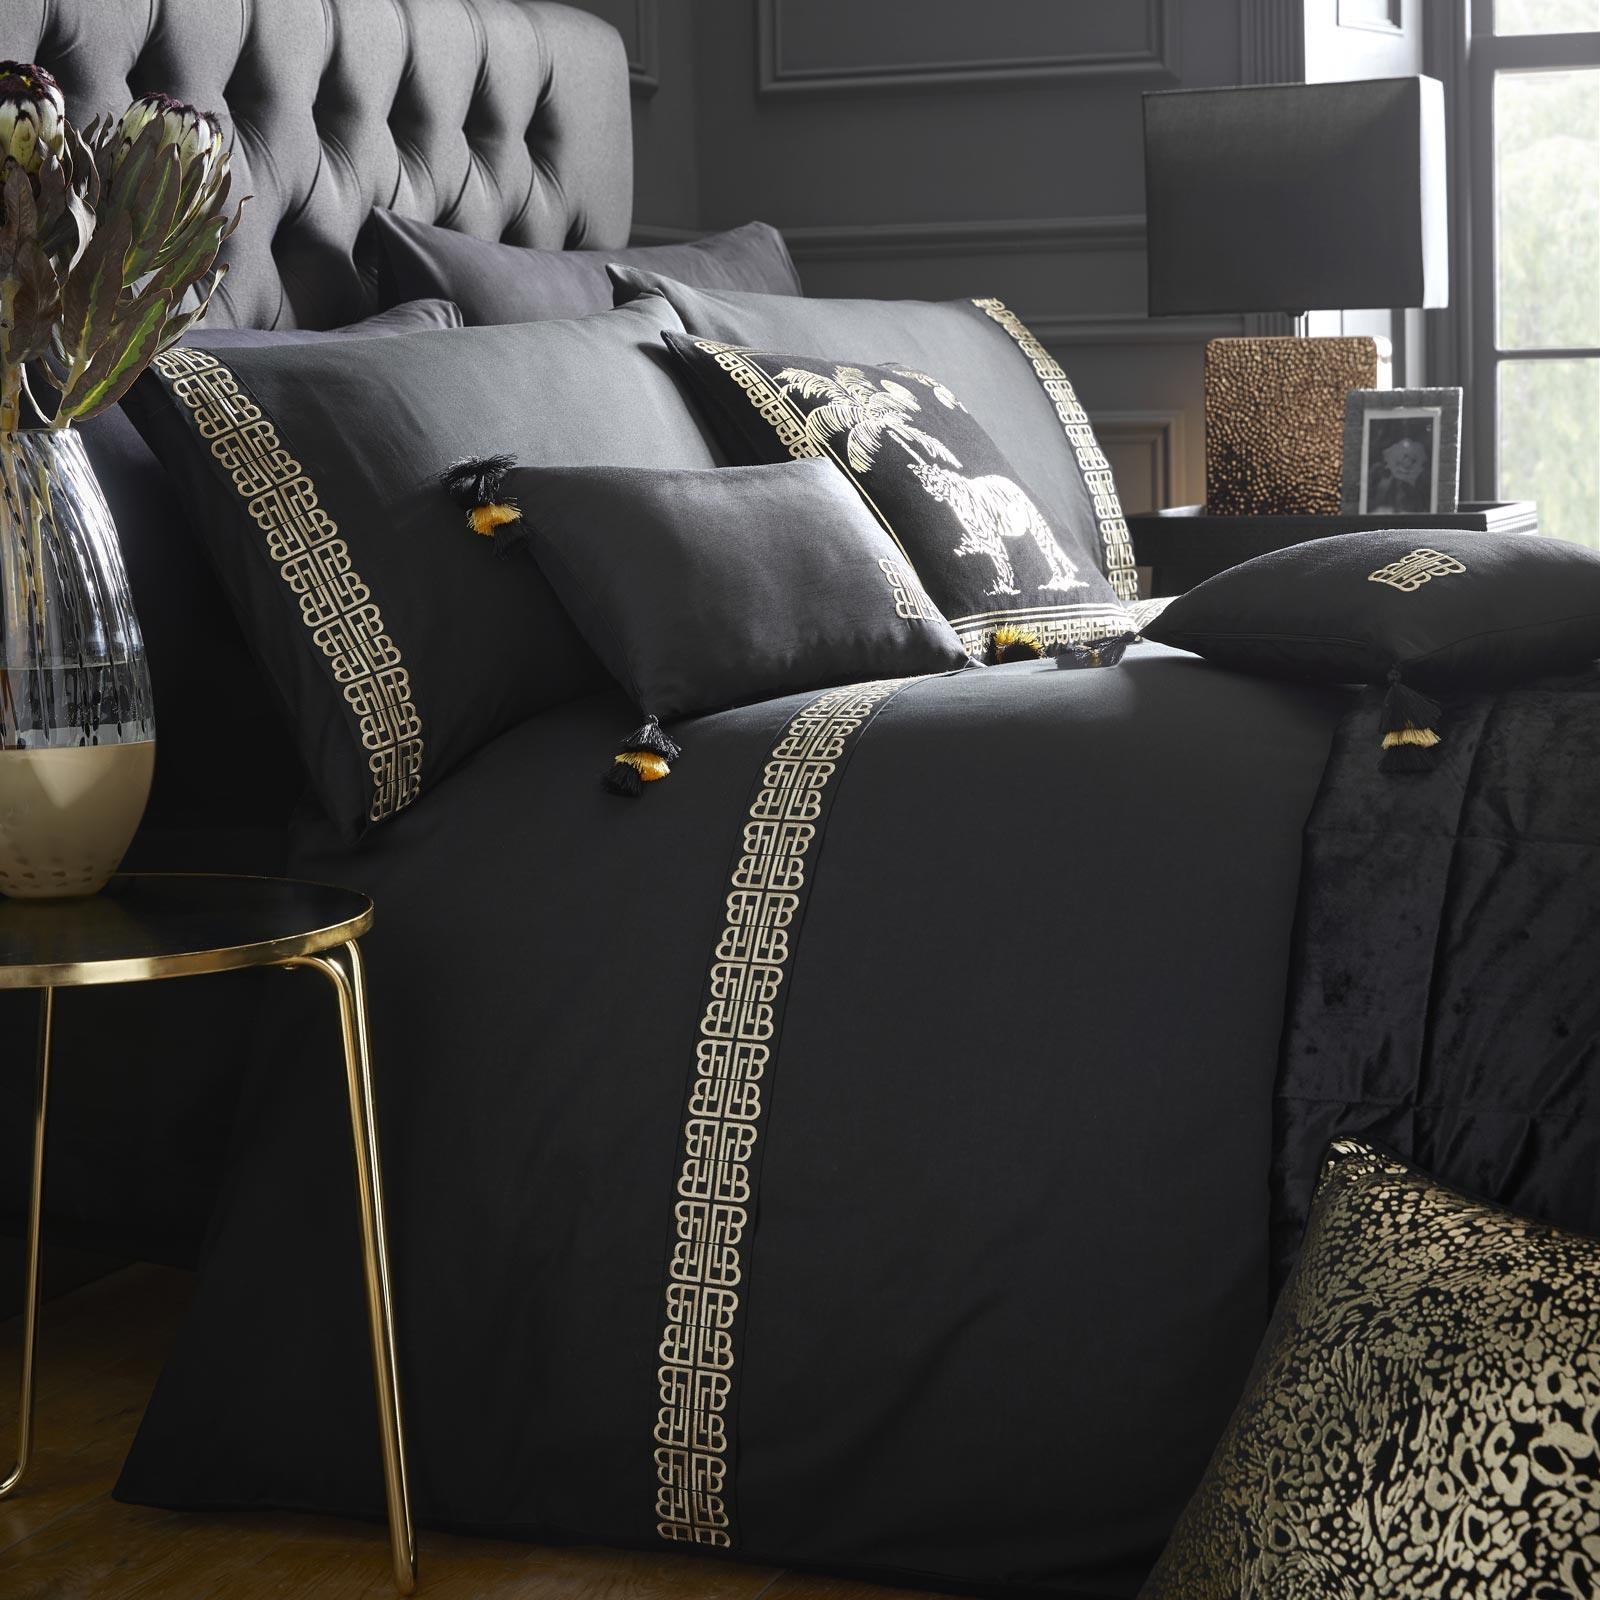 Black Duvet Covers Gold Embroidered Laurence Llewellyn Bowen Luxury Bedding Sets Ebay